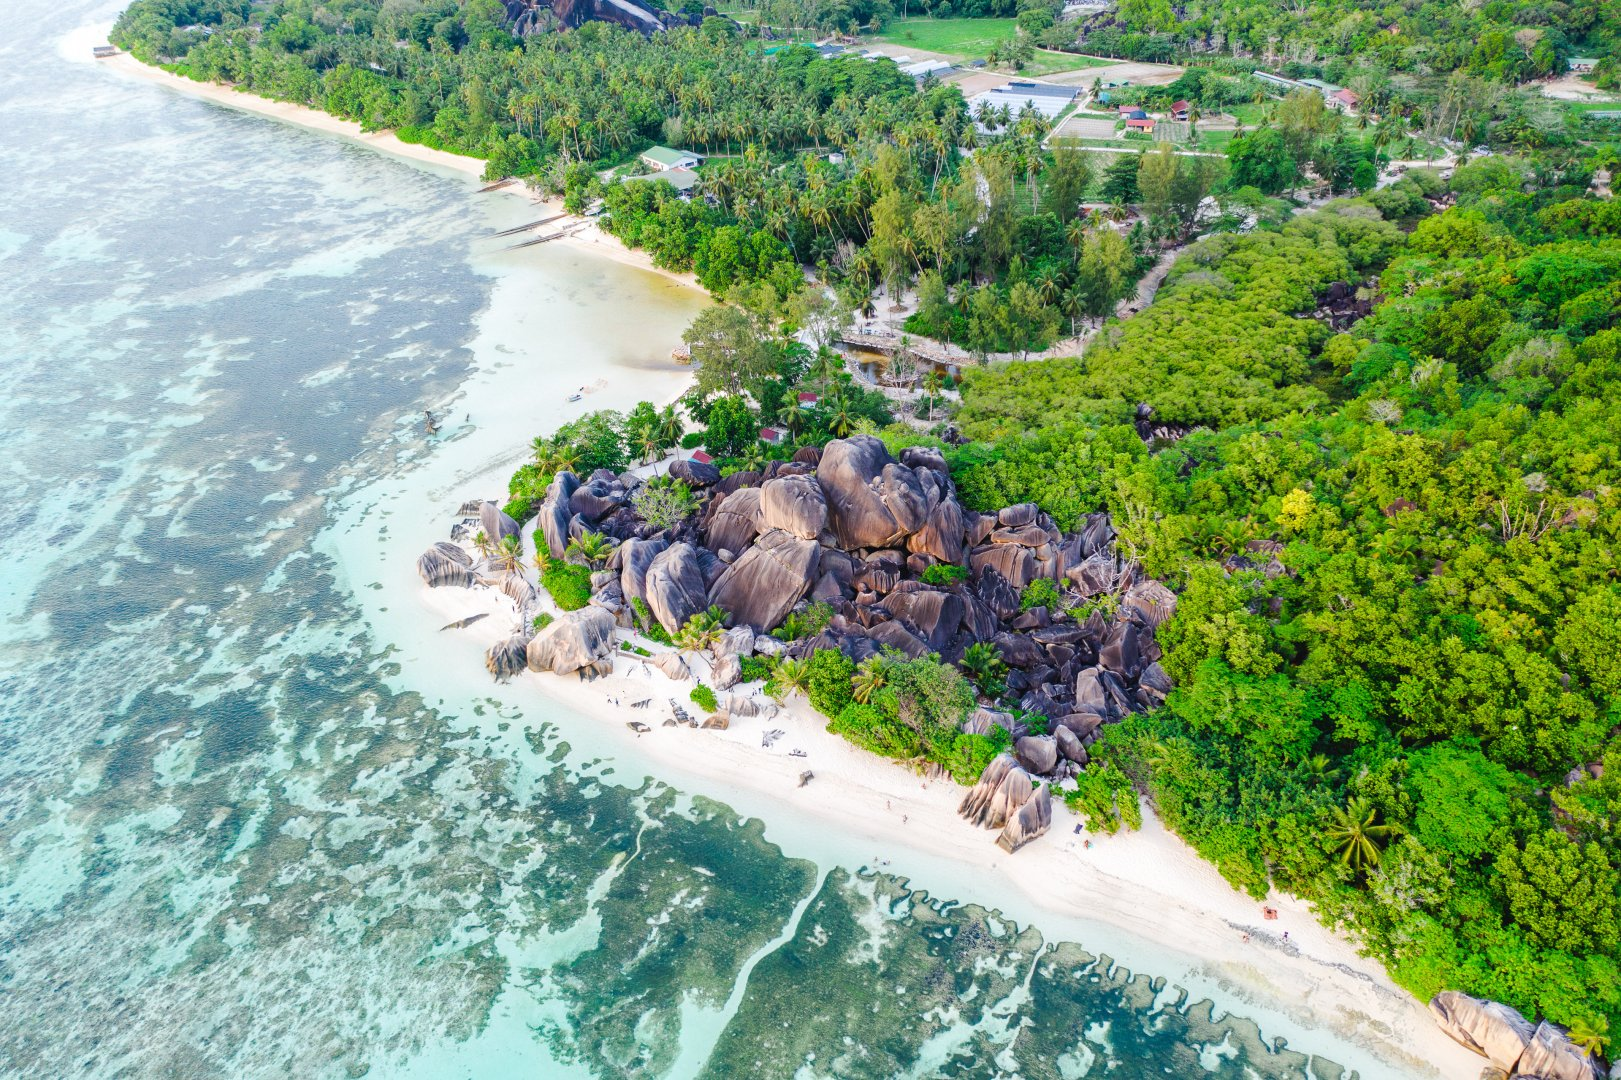 Aerial photography Natural landscape Coast Water resources Coastal and oceanic landforms Shore Bird's-eye view Real estate Photography Tropics Beach Landscape Estate Sea Island Bay Geological phenomenon Vacation Cape Promontory Cay Inlet Resort River island Tourism